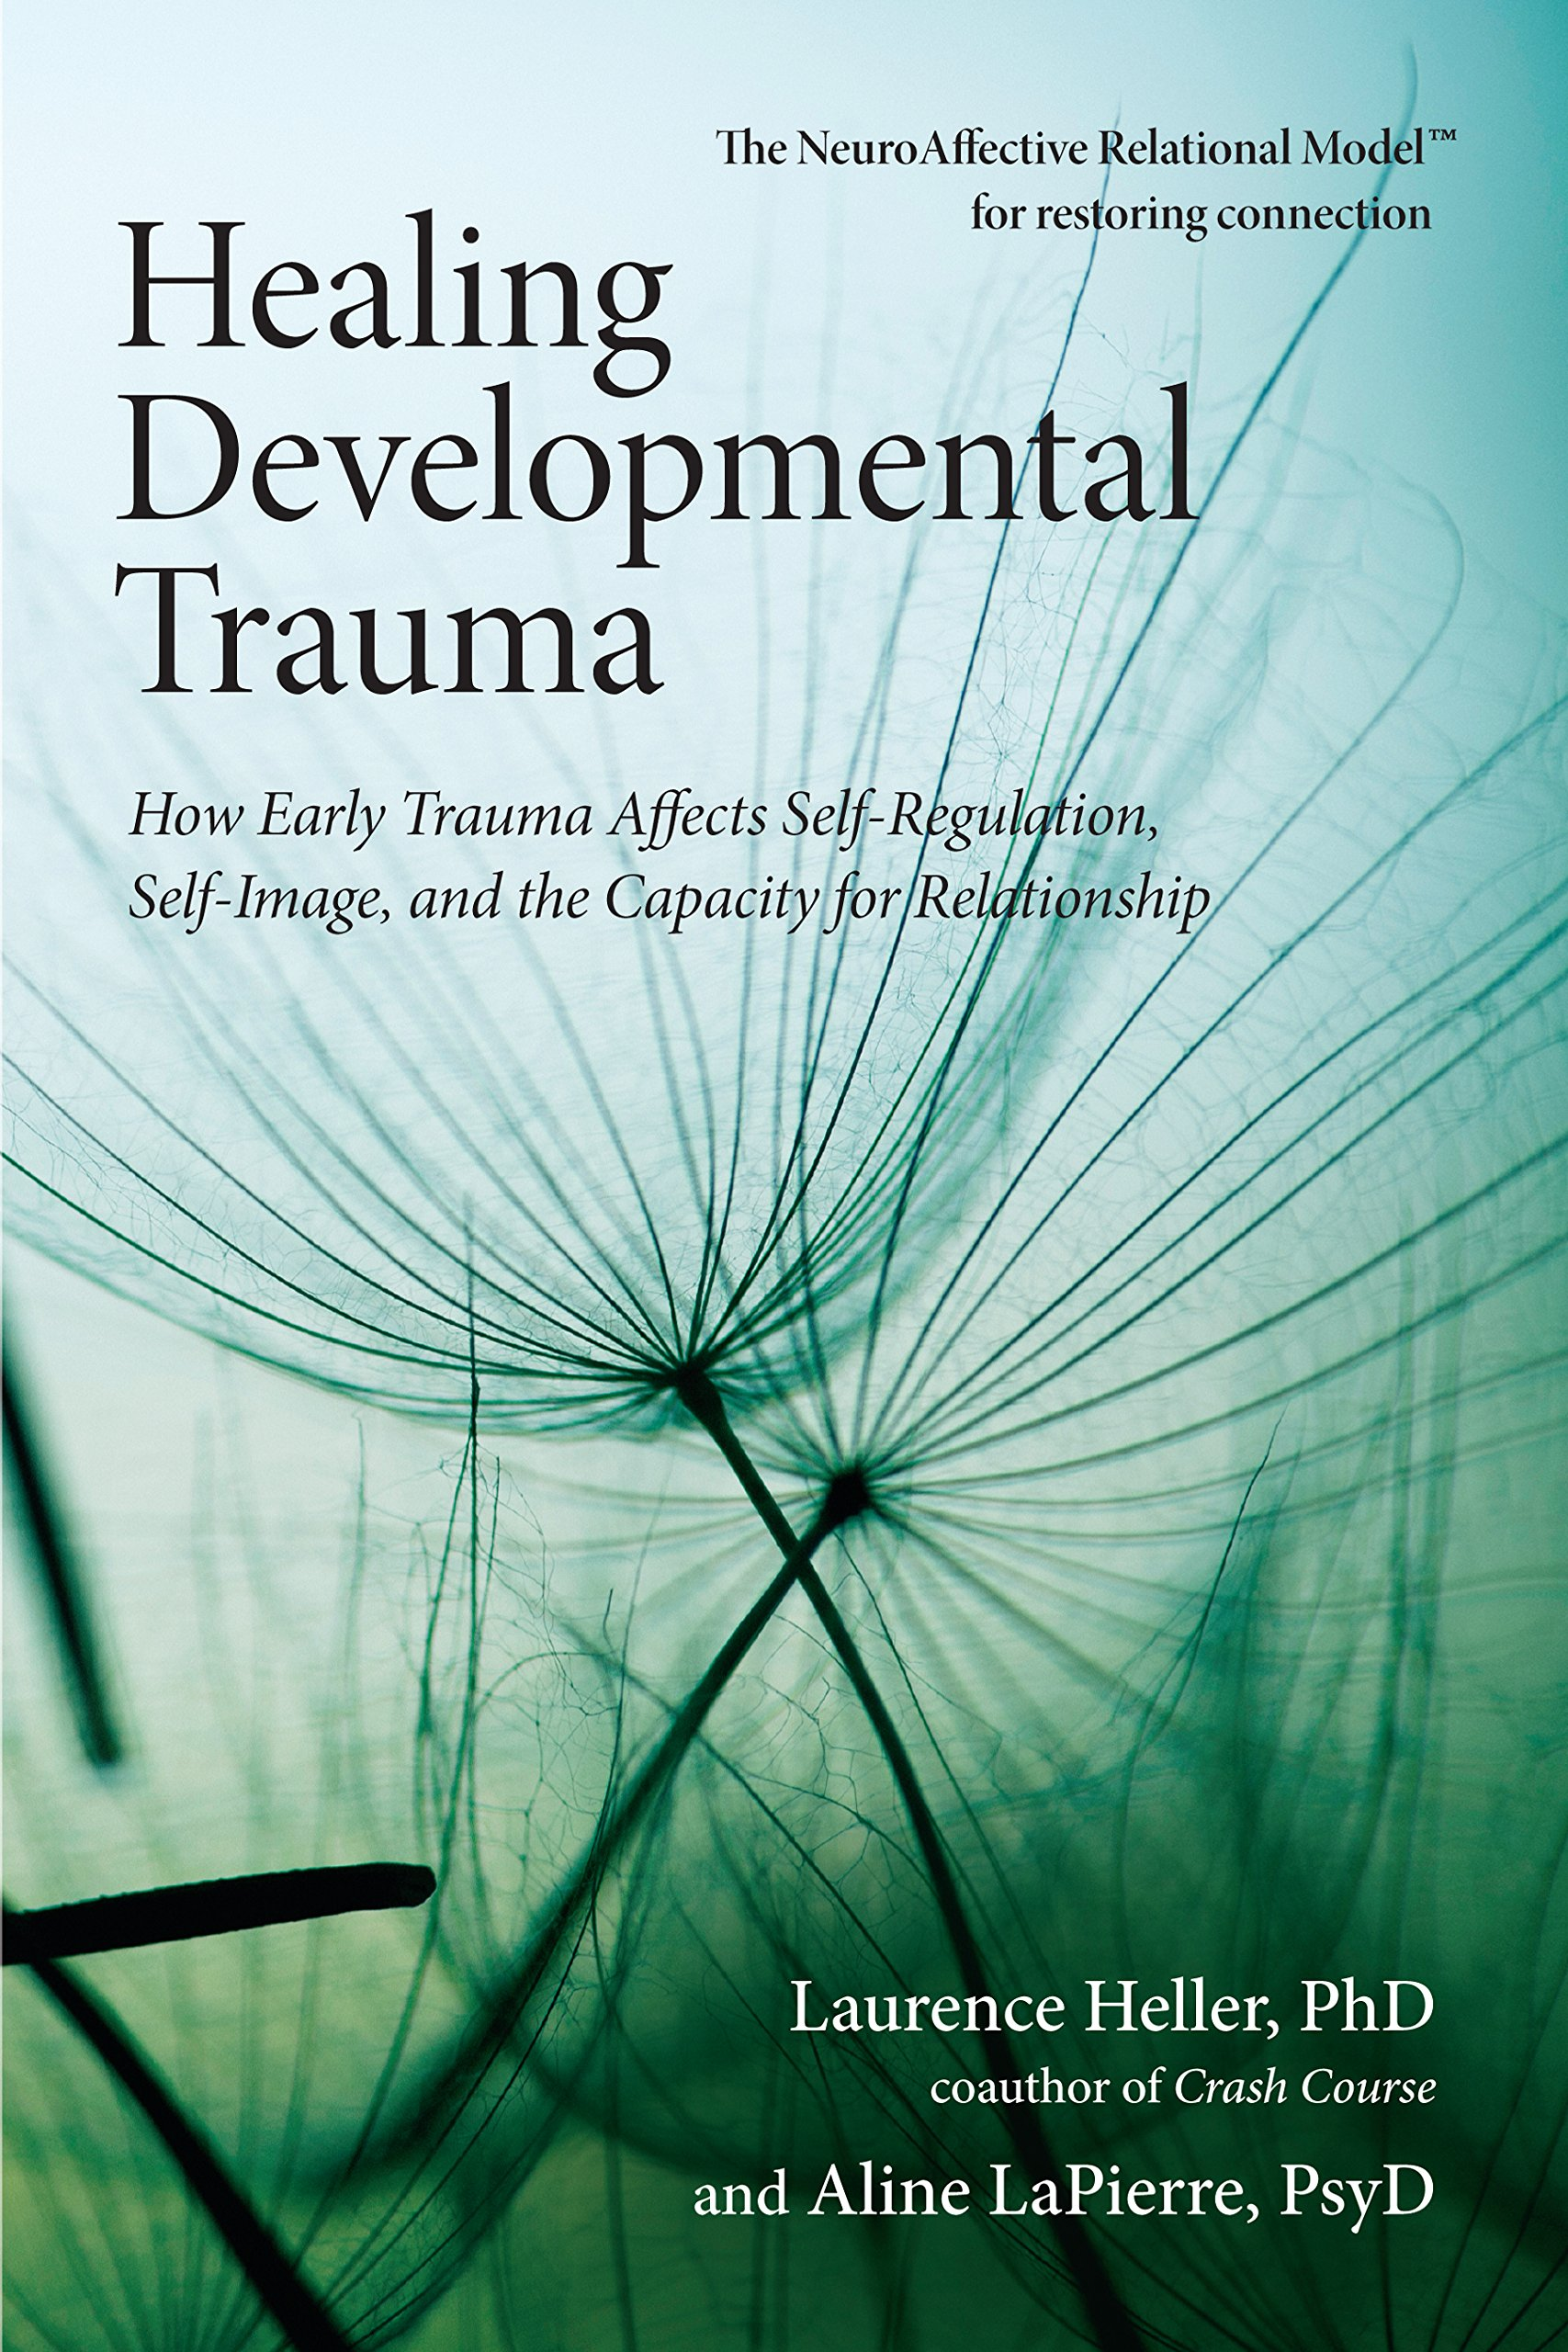 amazon healing developmental trauma how early trauma affects self